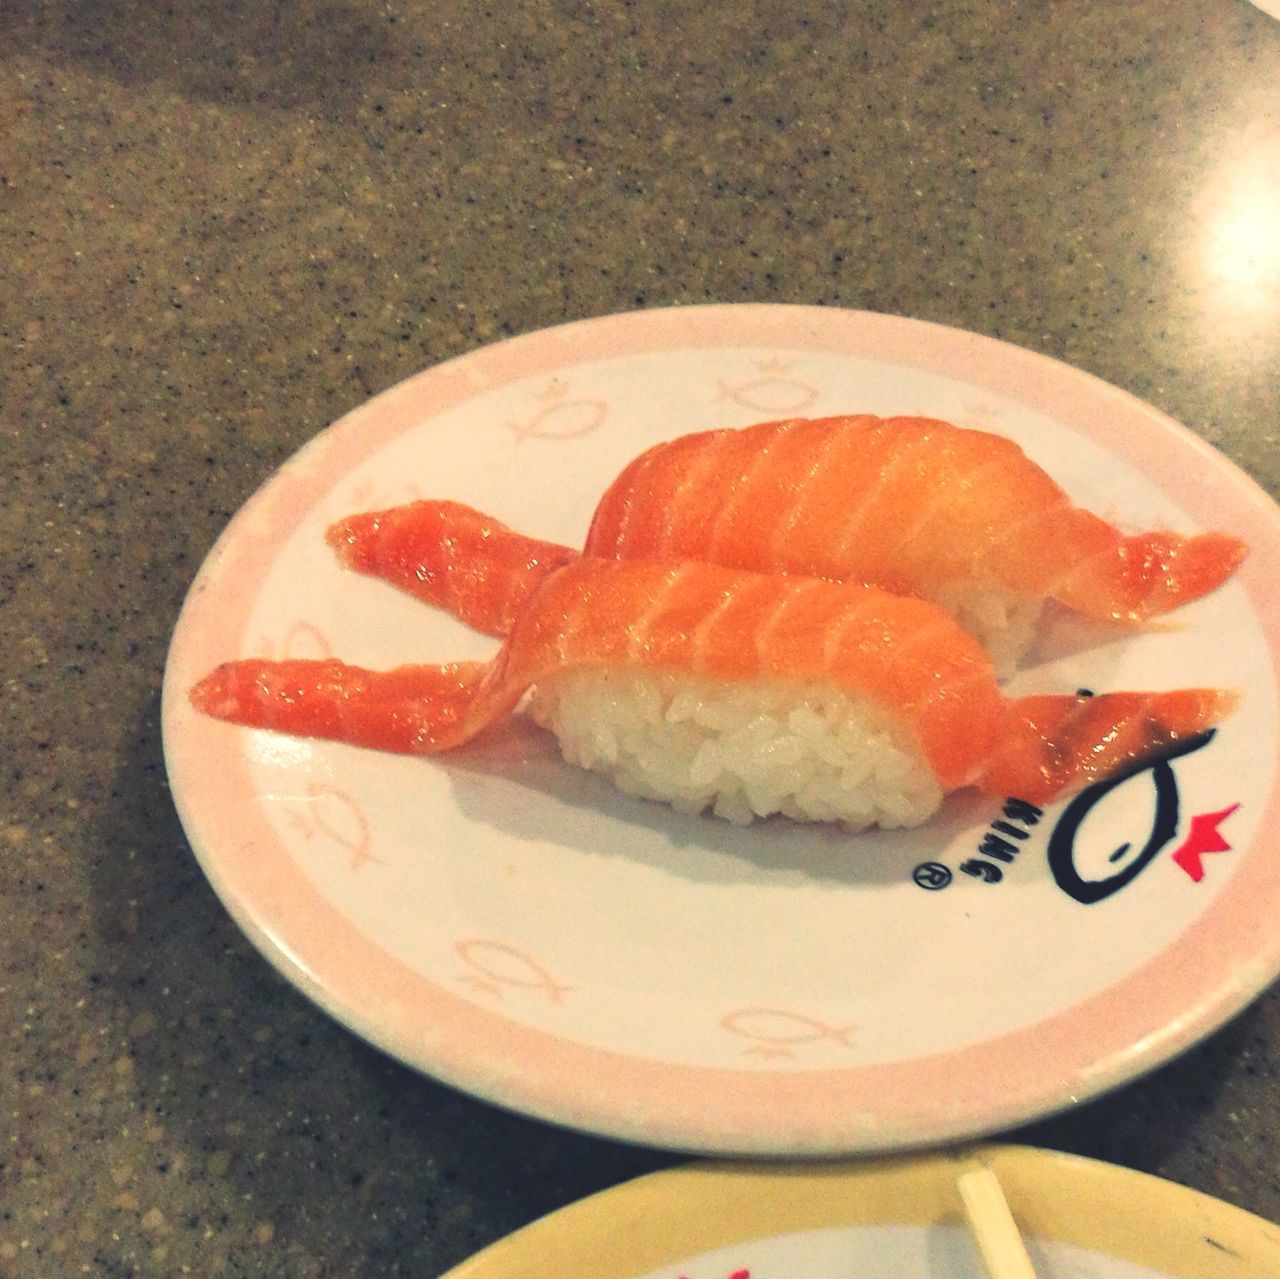 seafood, food and drink, food, freshness, japanese food, sushi, plate, healthy eating, still life, ready-to-eat, fish, no people, serving size, sashimi, salmon, close-up, indoors, day